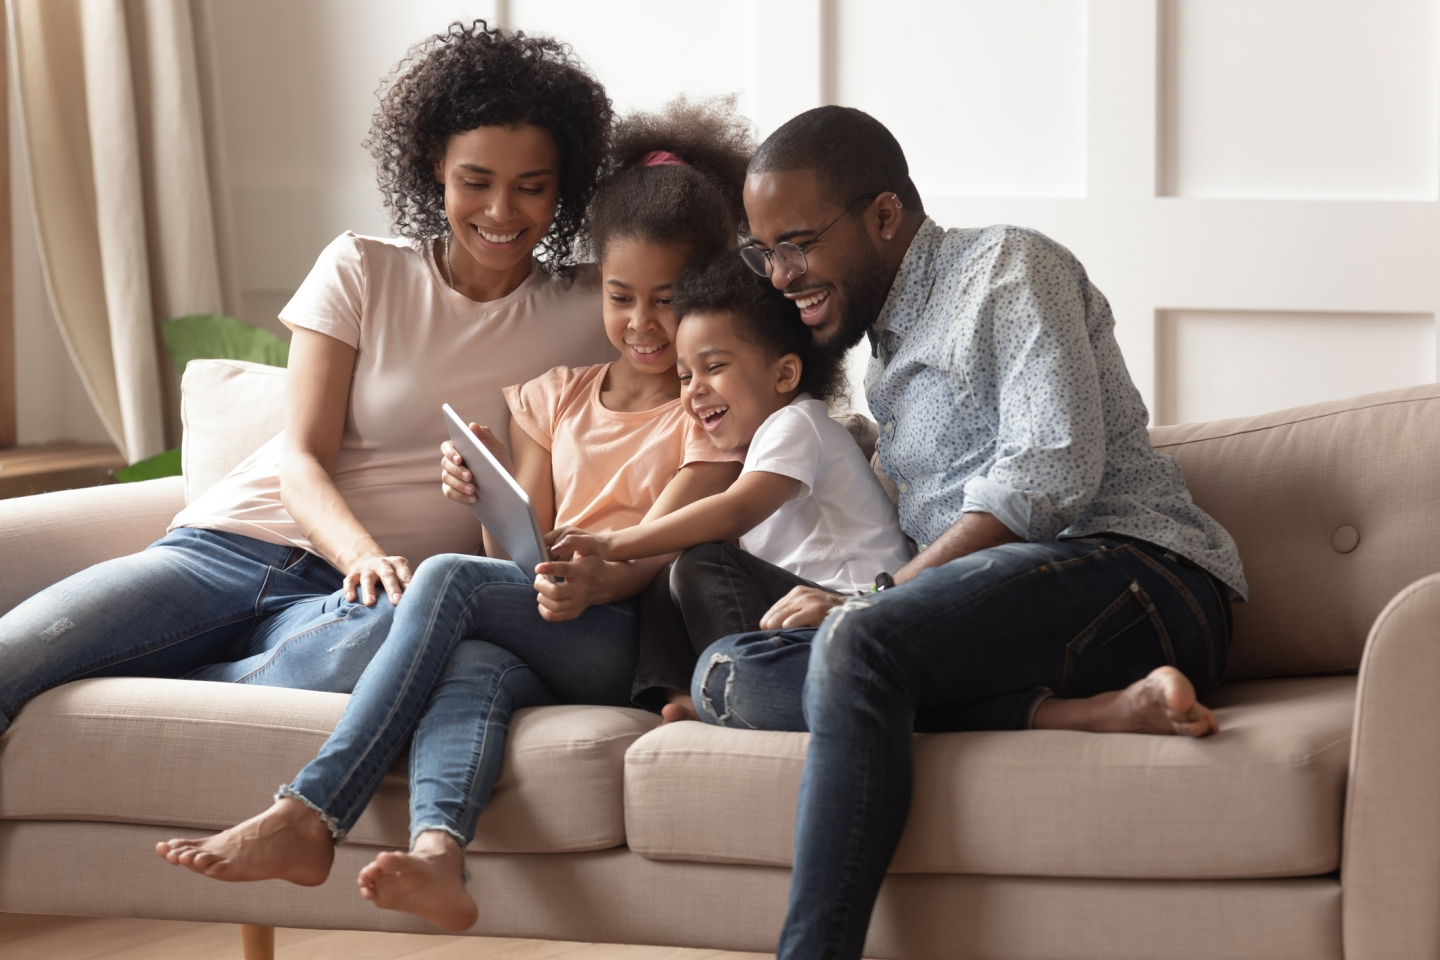 A family sits on a couch and gathers around a tablet